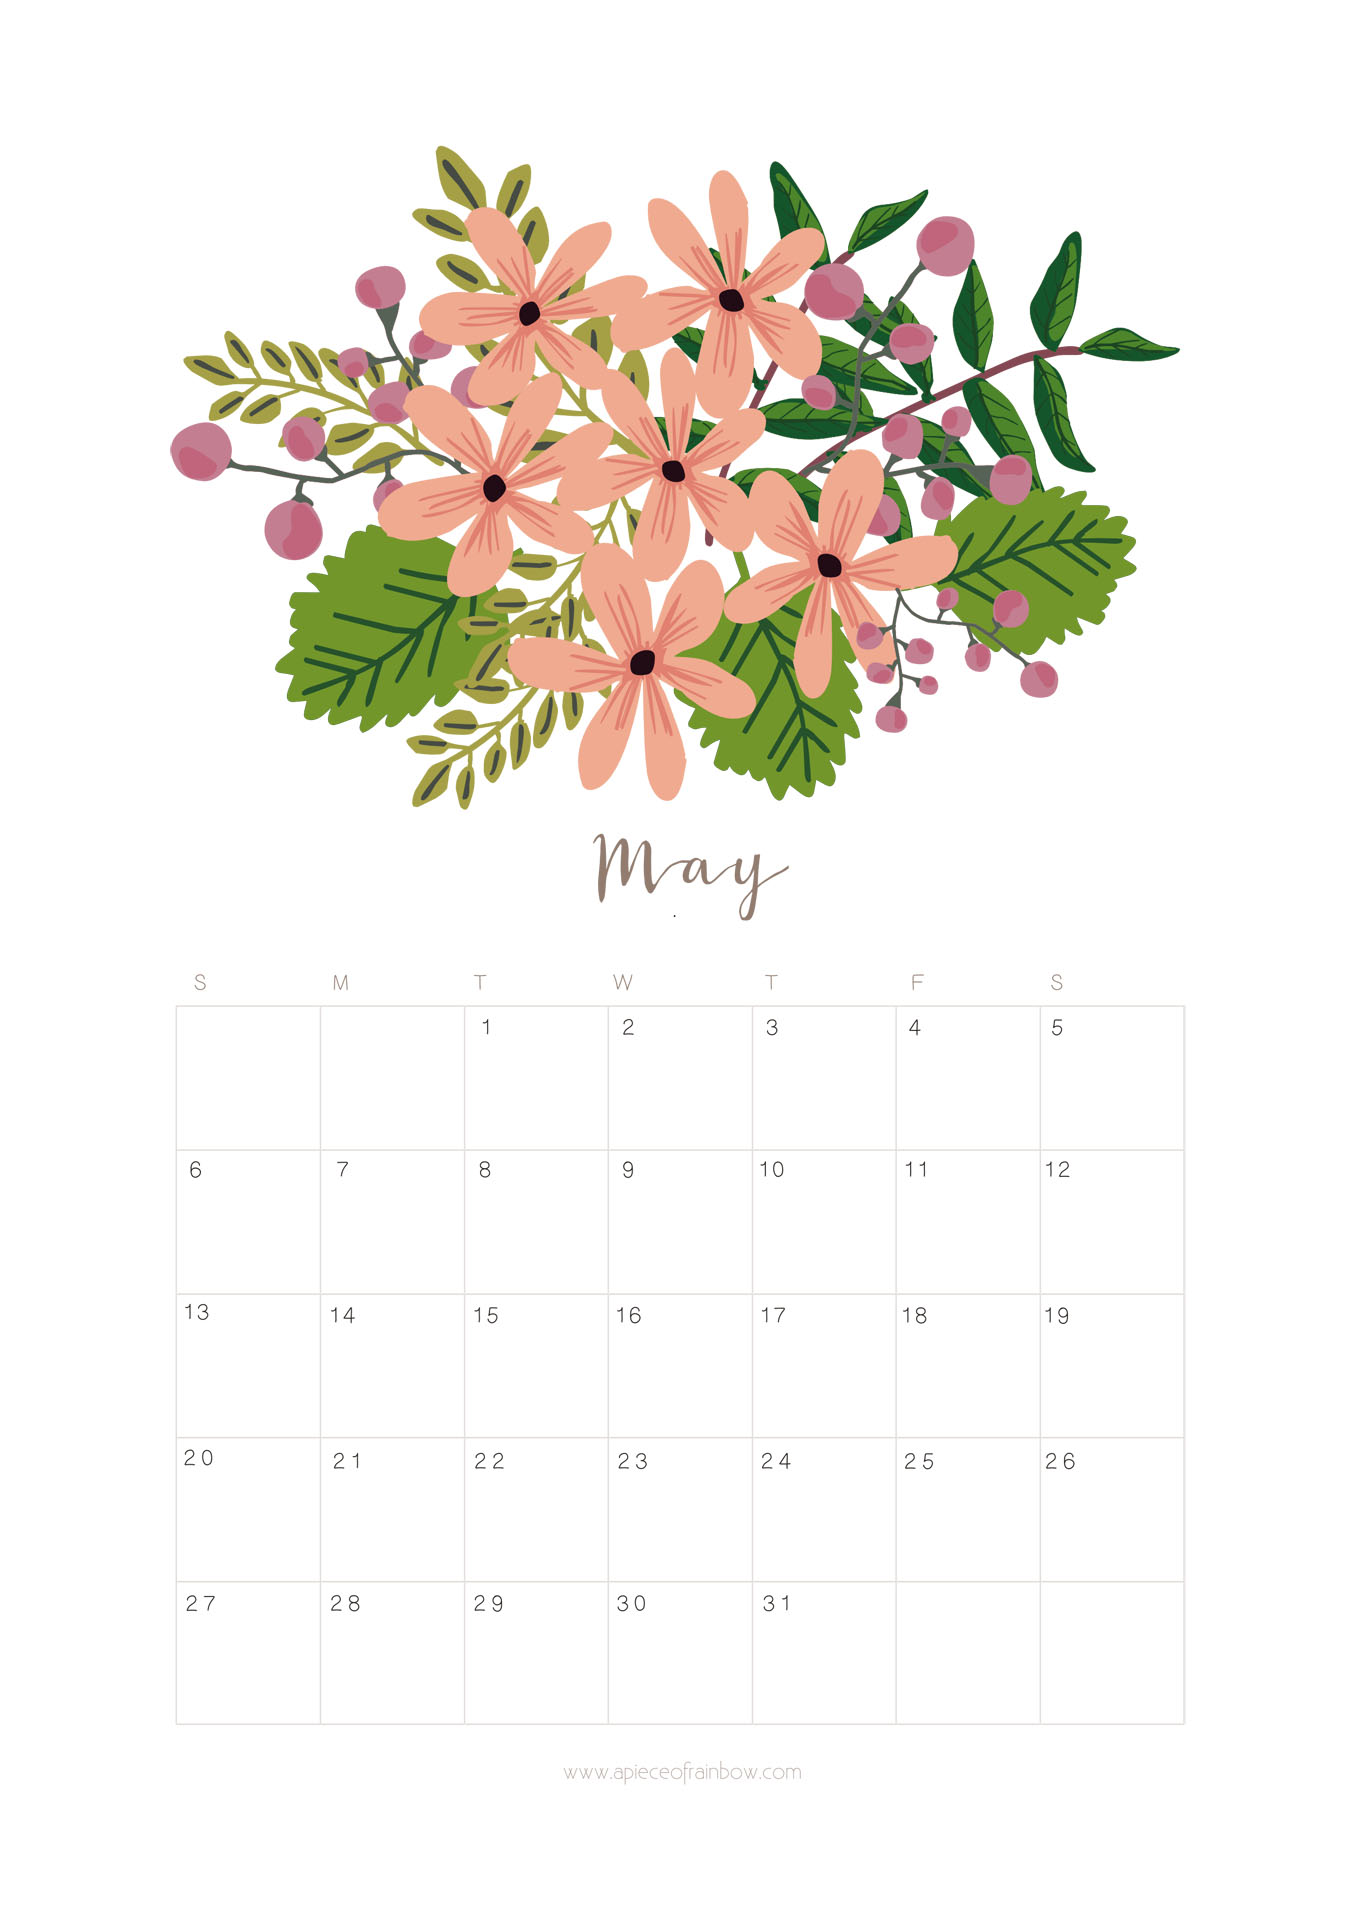 month of may calendar 2018